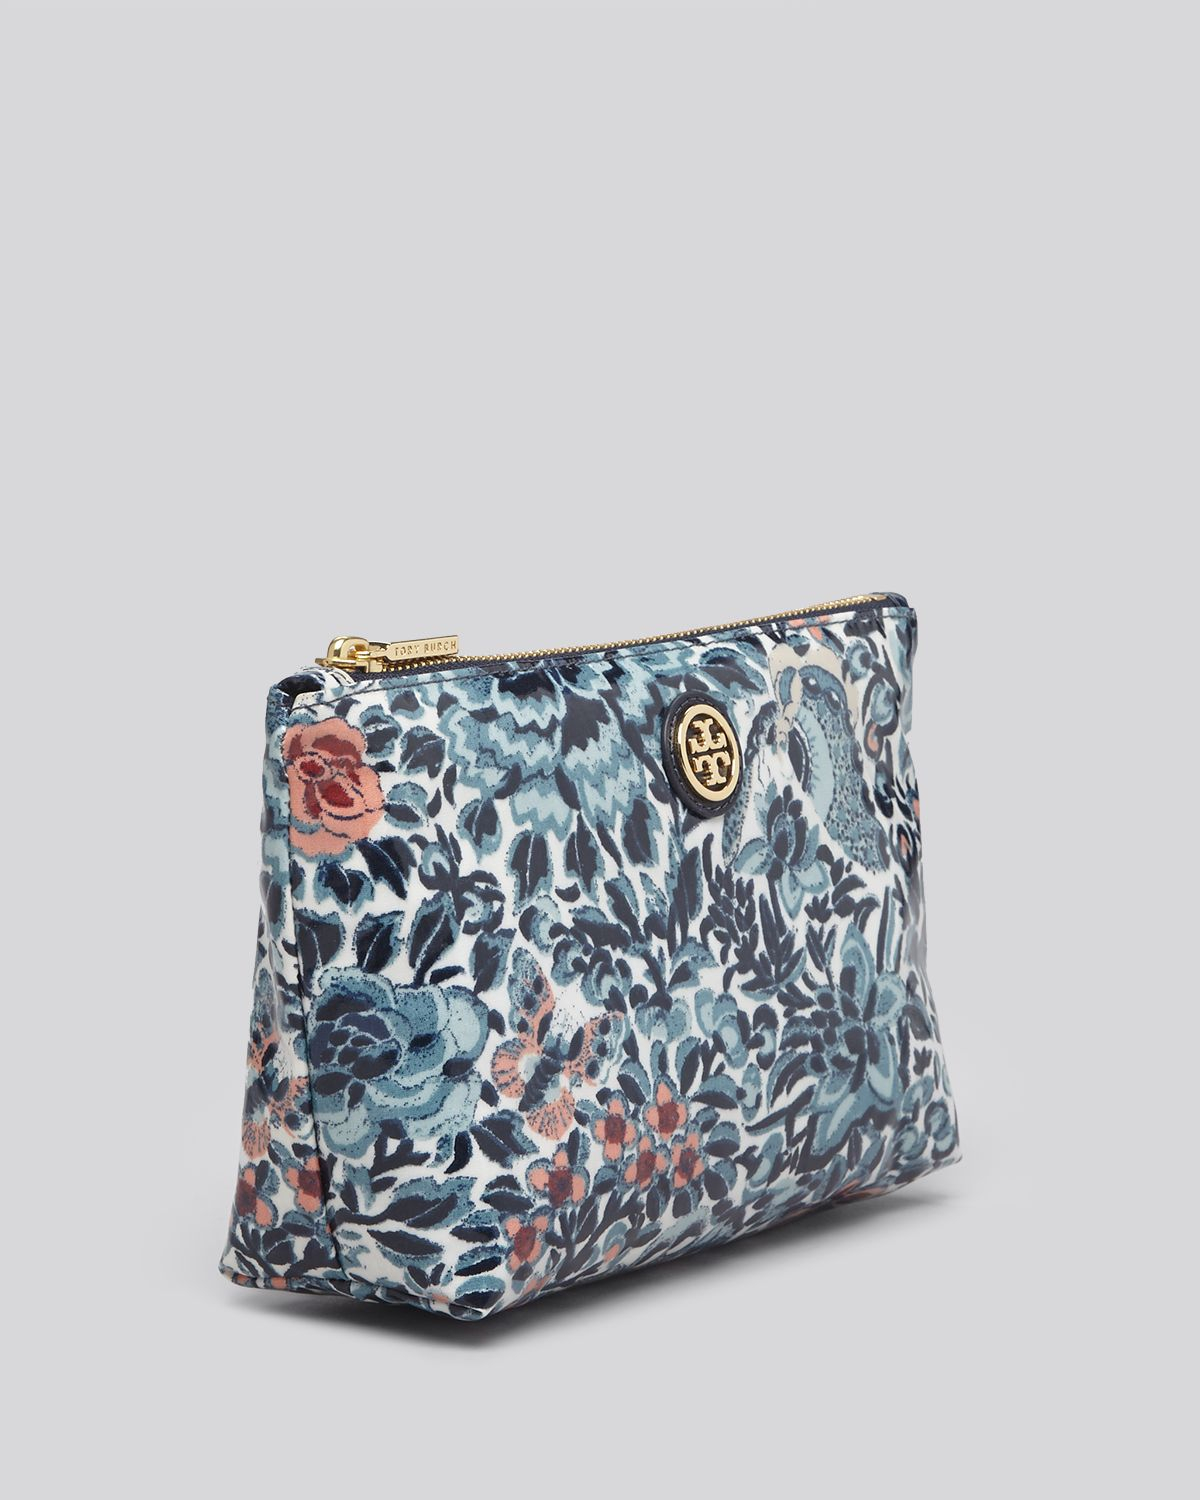 Tory Burch Cosmetic Case Small Slouchy Blue Kyoto